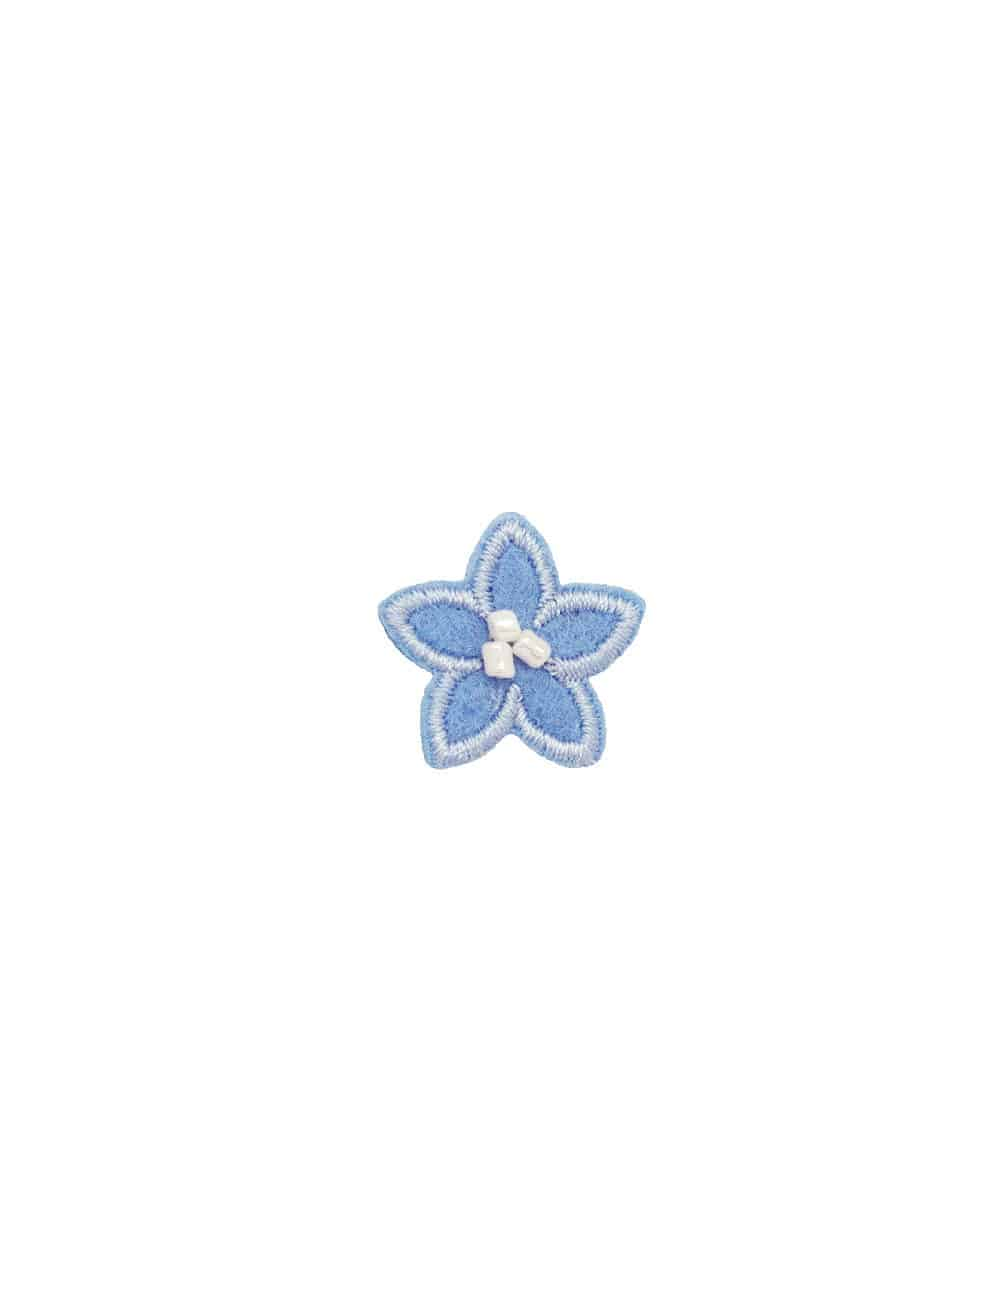 Light Blue with White Floral Lapel Pin LP13.10